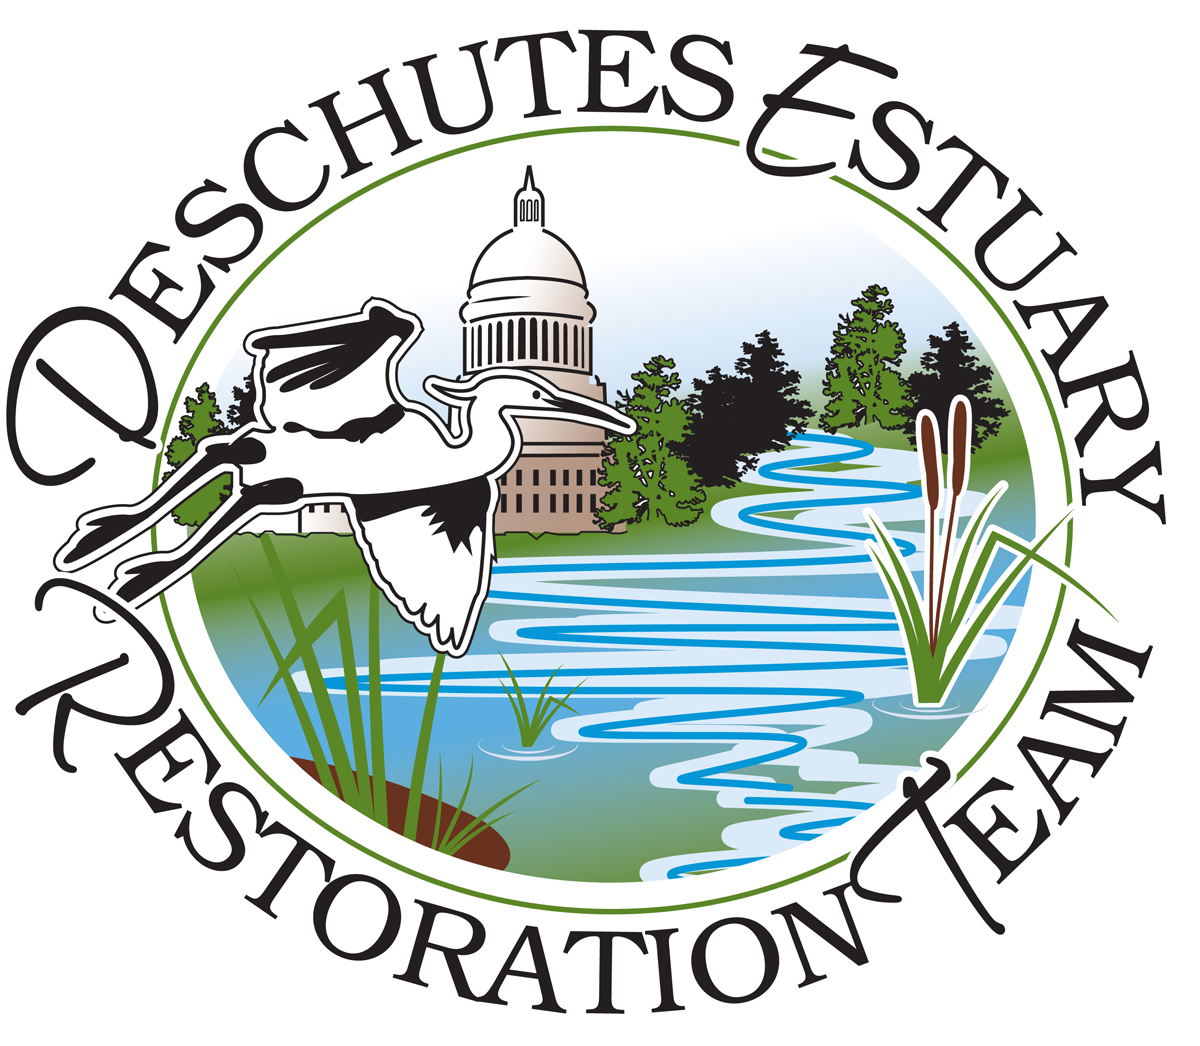 Deschutes Estuary Restoration Team Logo Olympia, WA